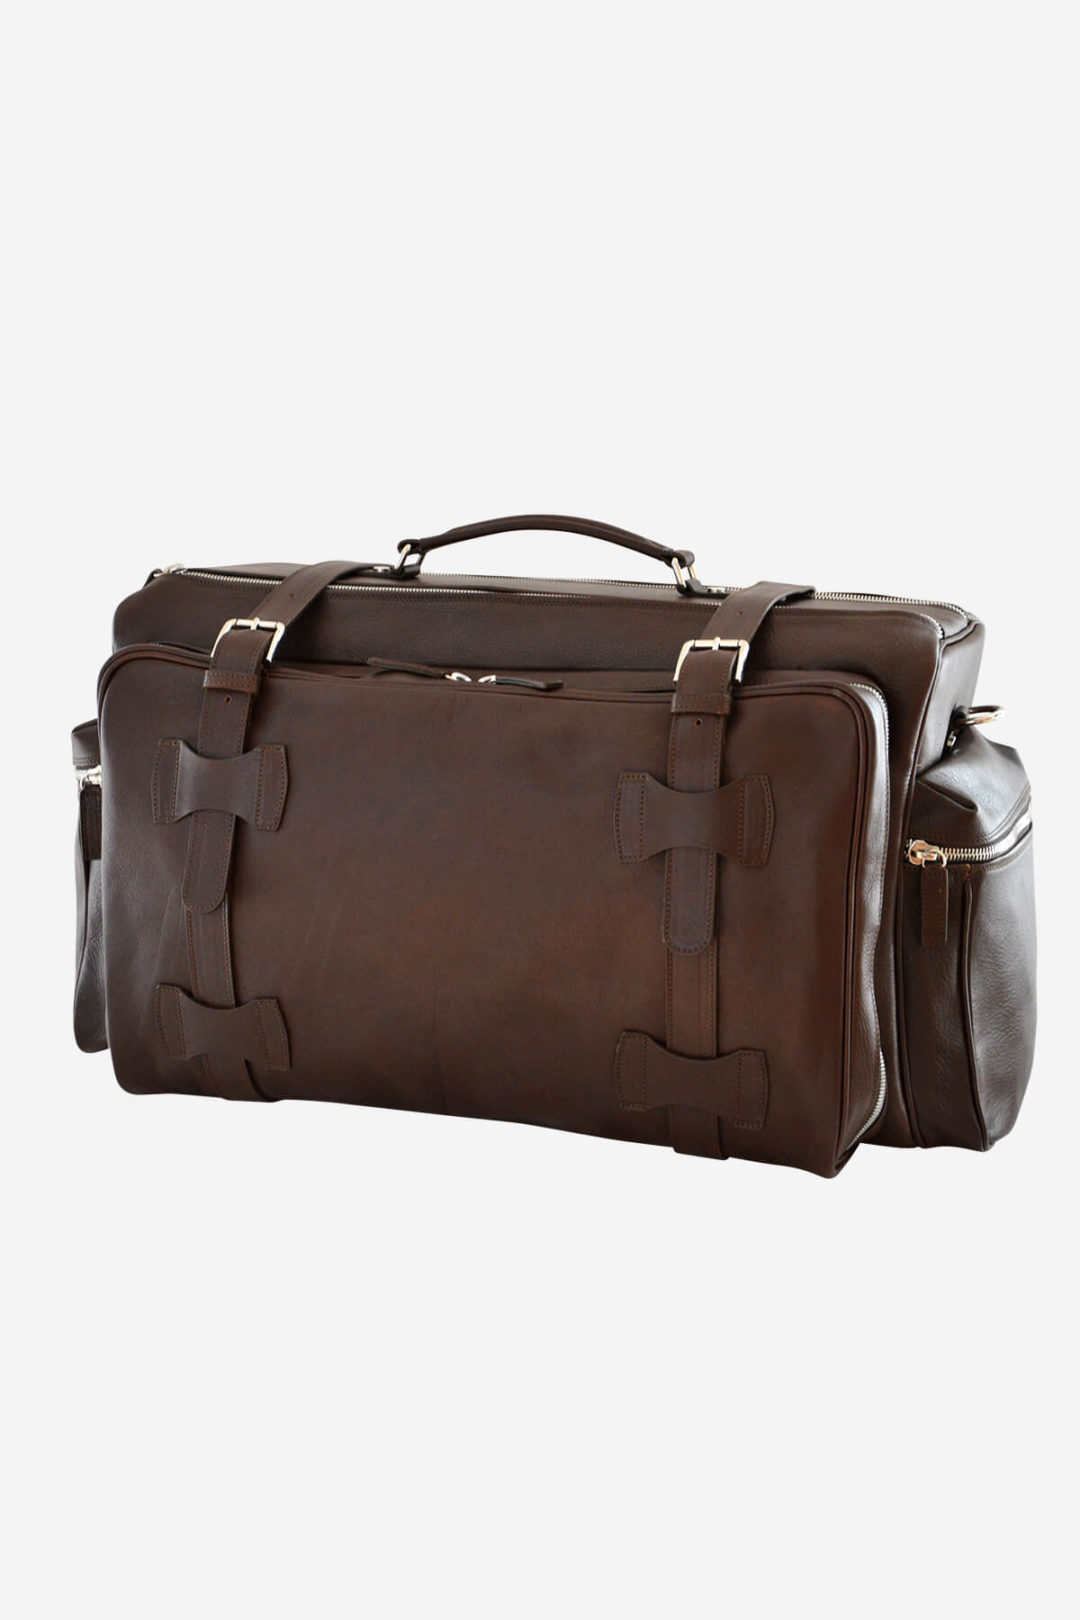 Weekender Jones handmade in italy vegetable tanned leather terrida venezia marco polo collection business travel